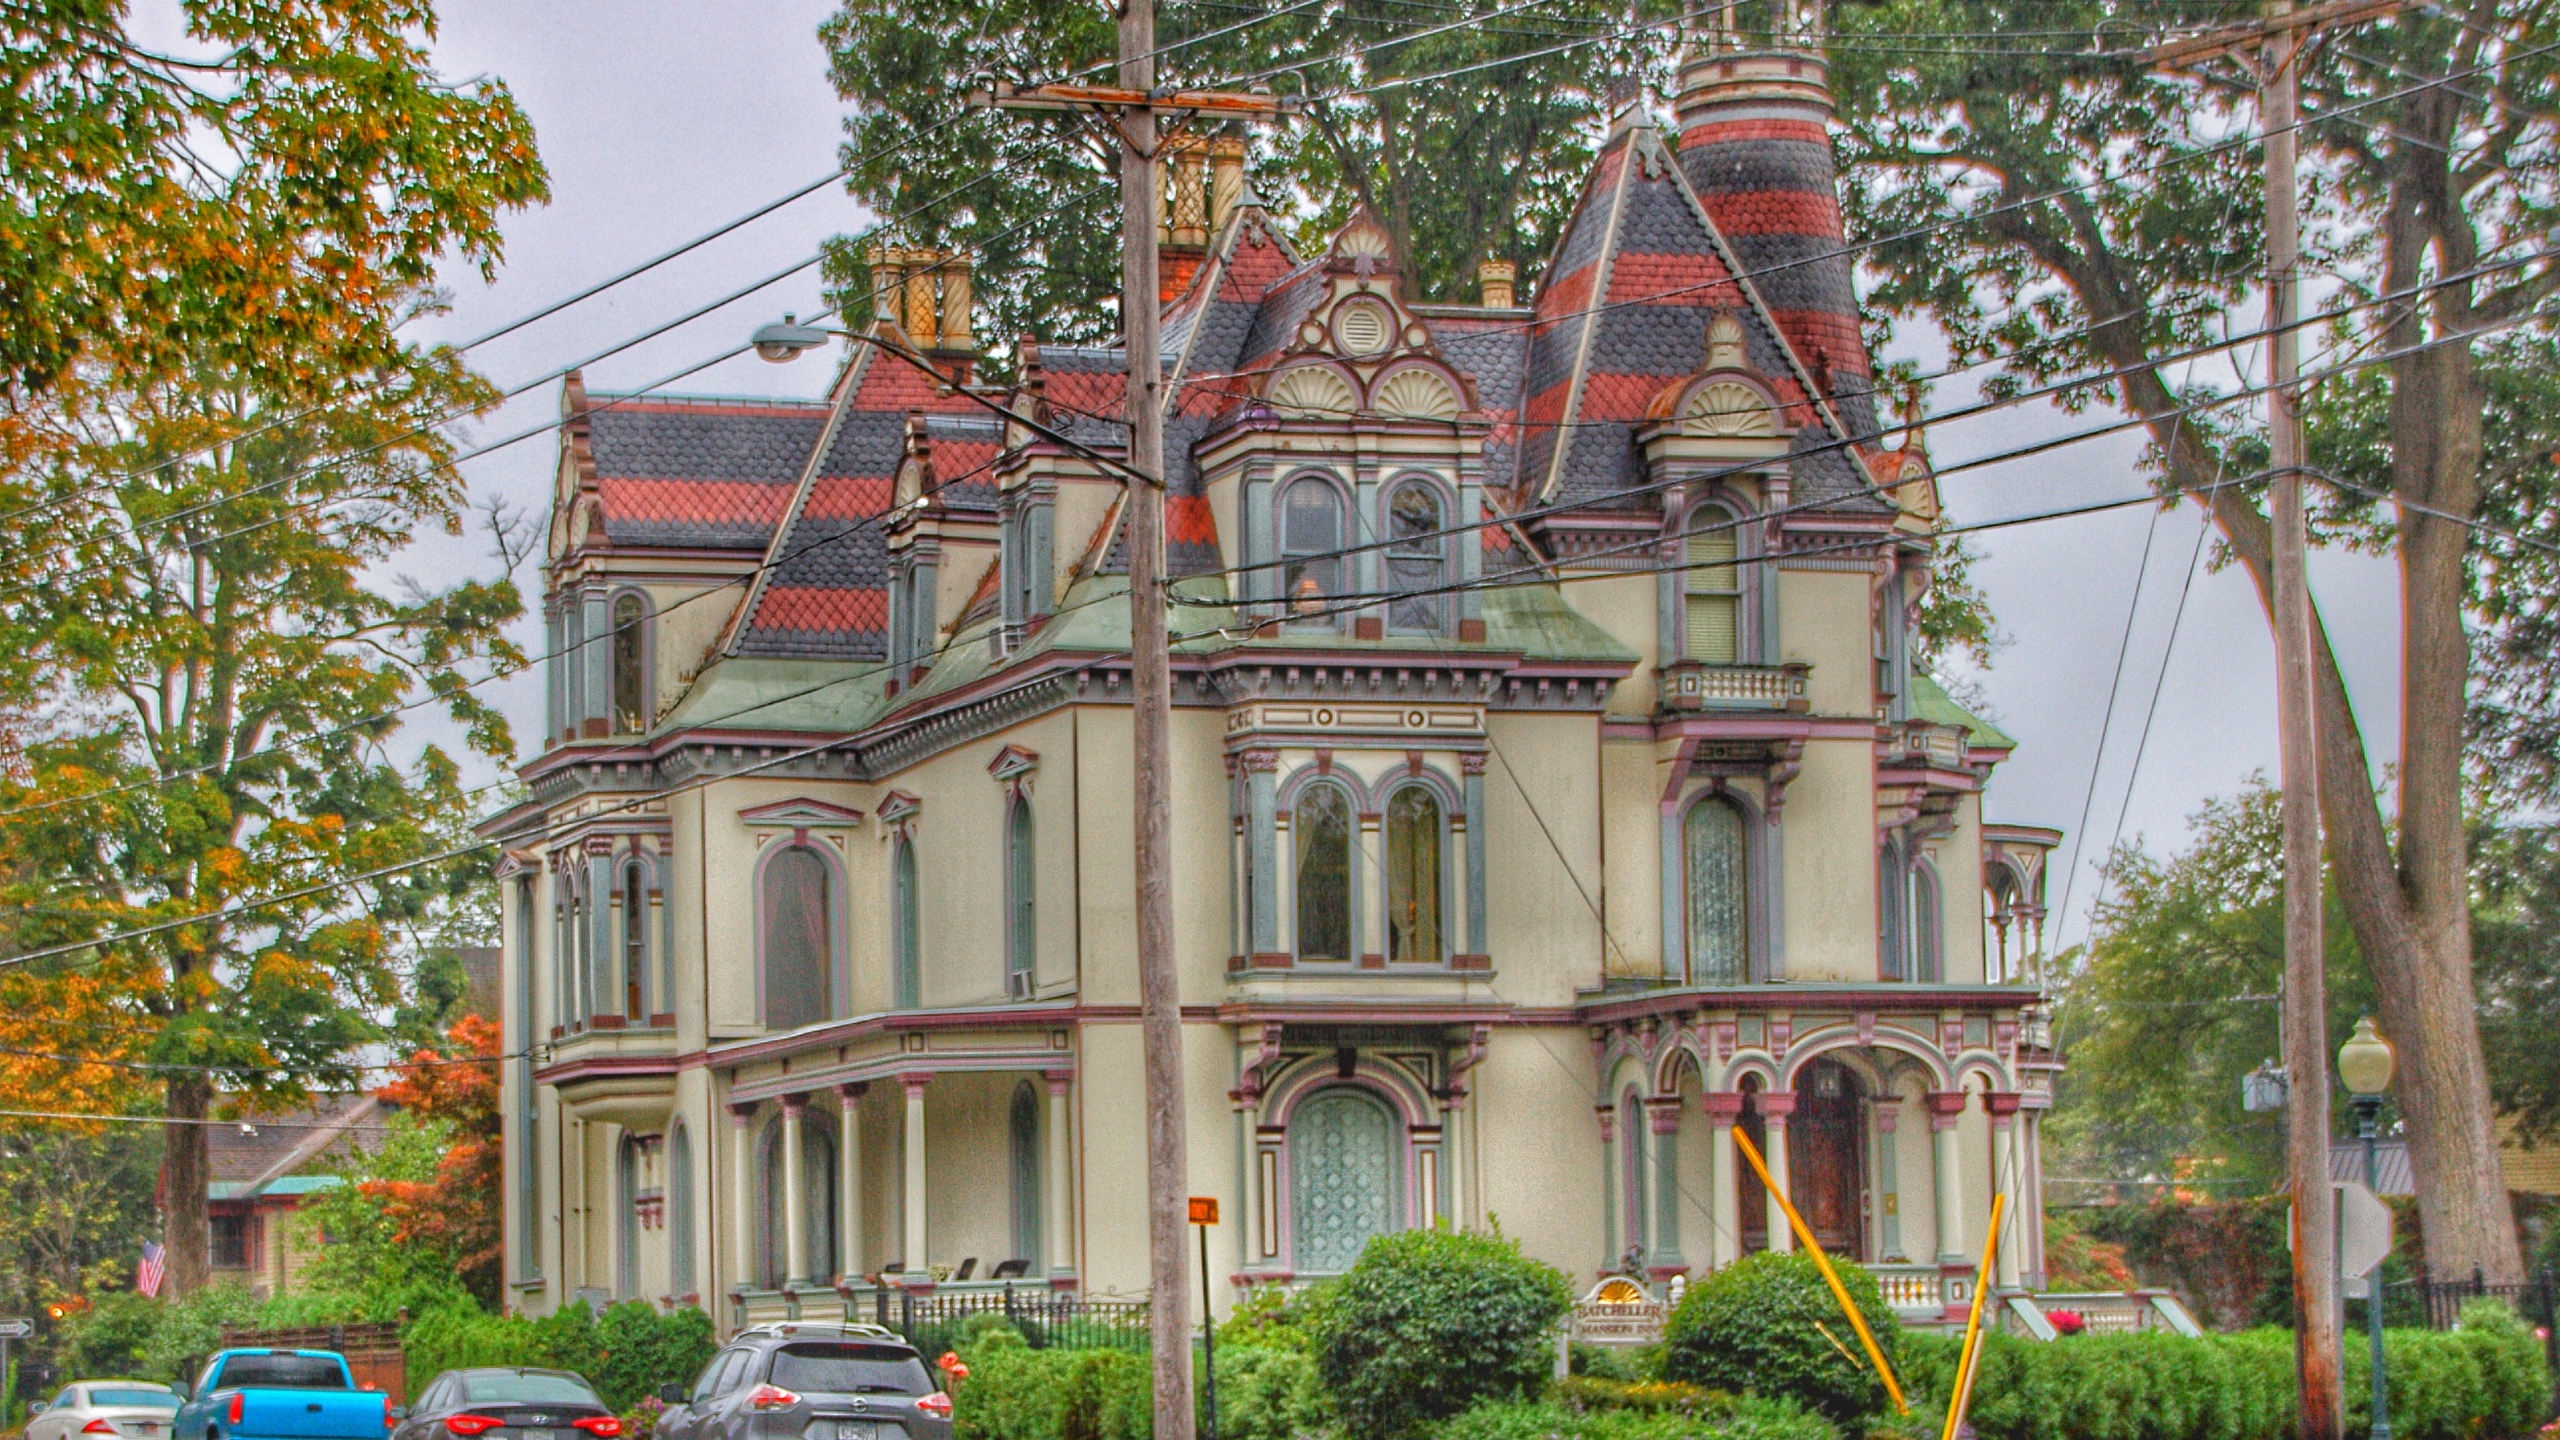 Batcheller Mansion Saratoga Inn, one of the city's landmarks, is an architectural pastiche of High Victorian Eclecticism combining French Renaissance Revival, Italianate and Egyptian influences. It is crowned by a mansard roof and its tower is topped by a minaret. Built in 1873 by George Sherman Batcheller, it sits majestically on the corner of Circular Street and Whitney Place with a commanding vantage of Congress Park. (Onasill~Bill / Flickr / CC BY-NC-SA 2.0)